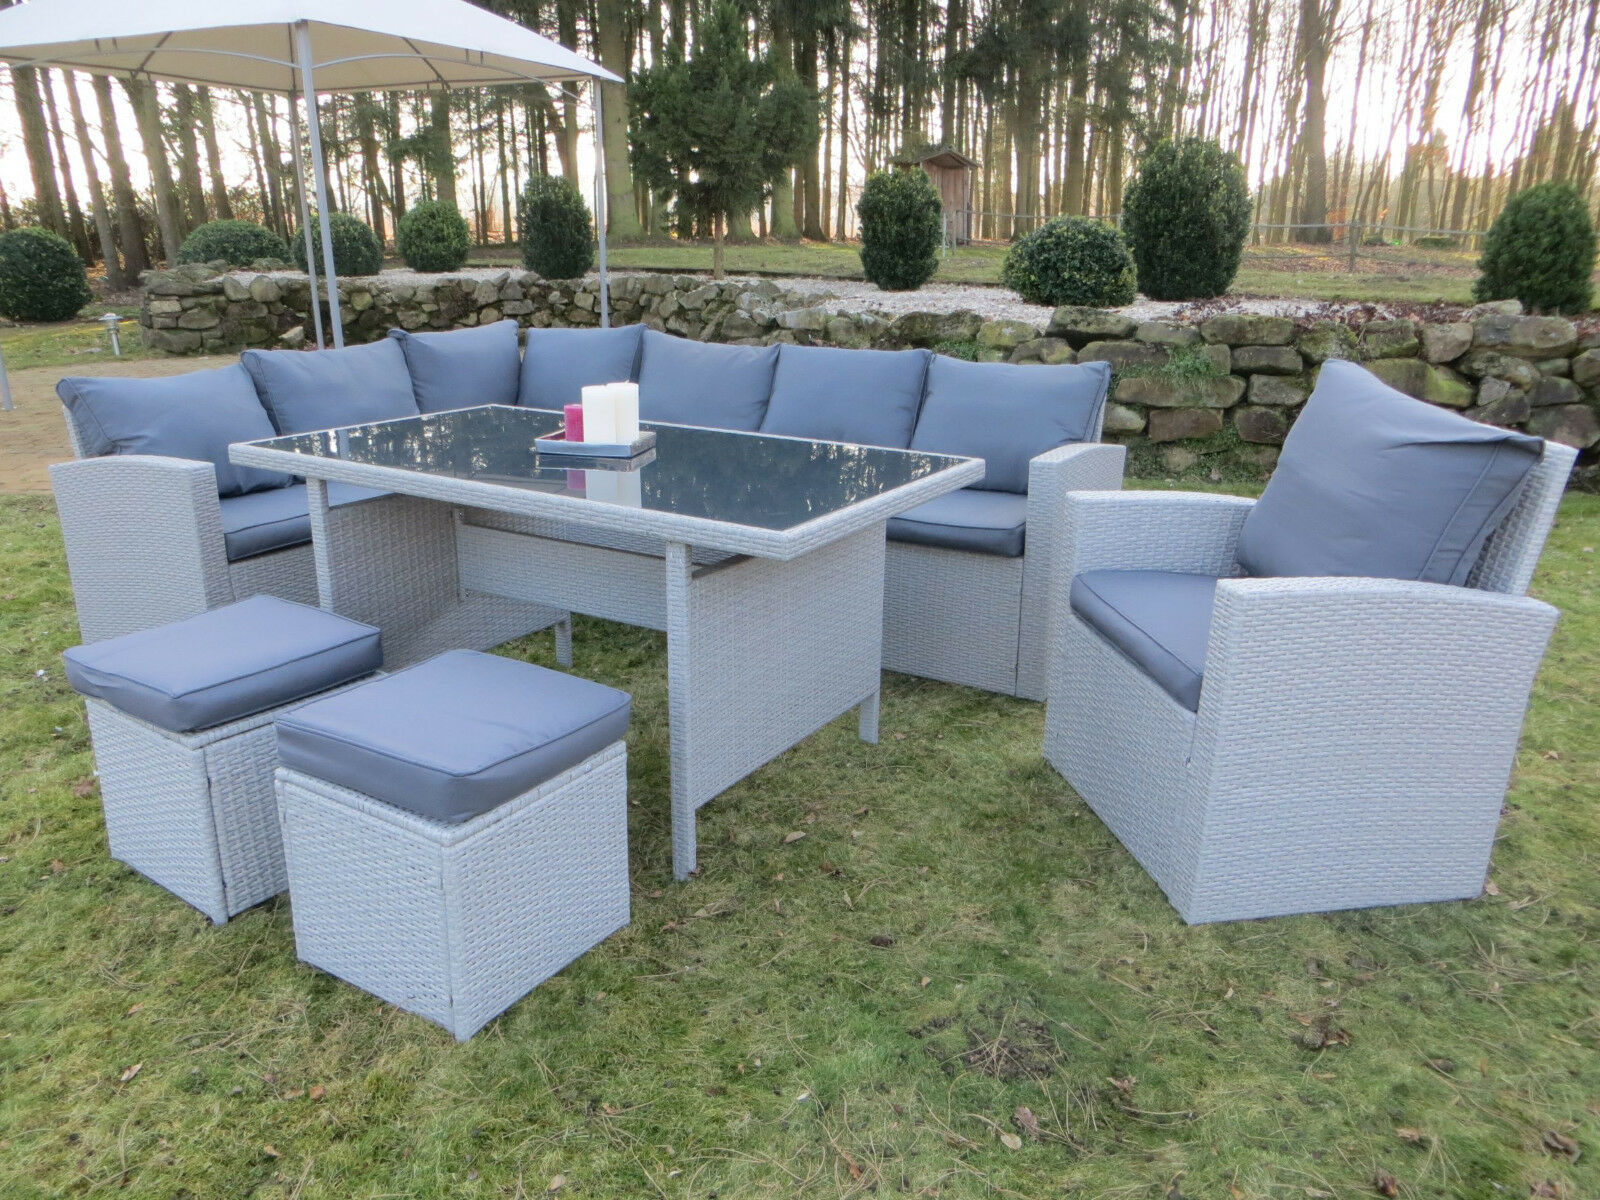 polyrattan lounge set milos xl sitzgruppe gartenm bel garnitur gruppe hoch eck eur 899 00. Black Bedroom Furniture Sets. Home Design Ideas